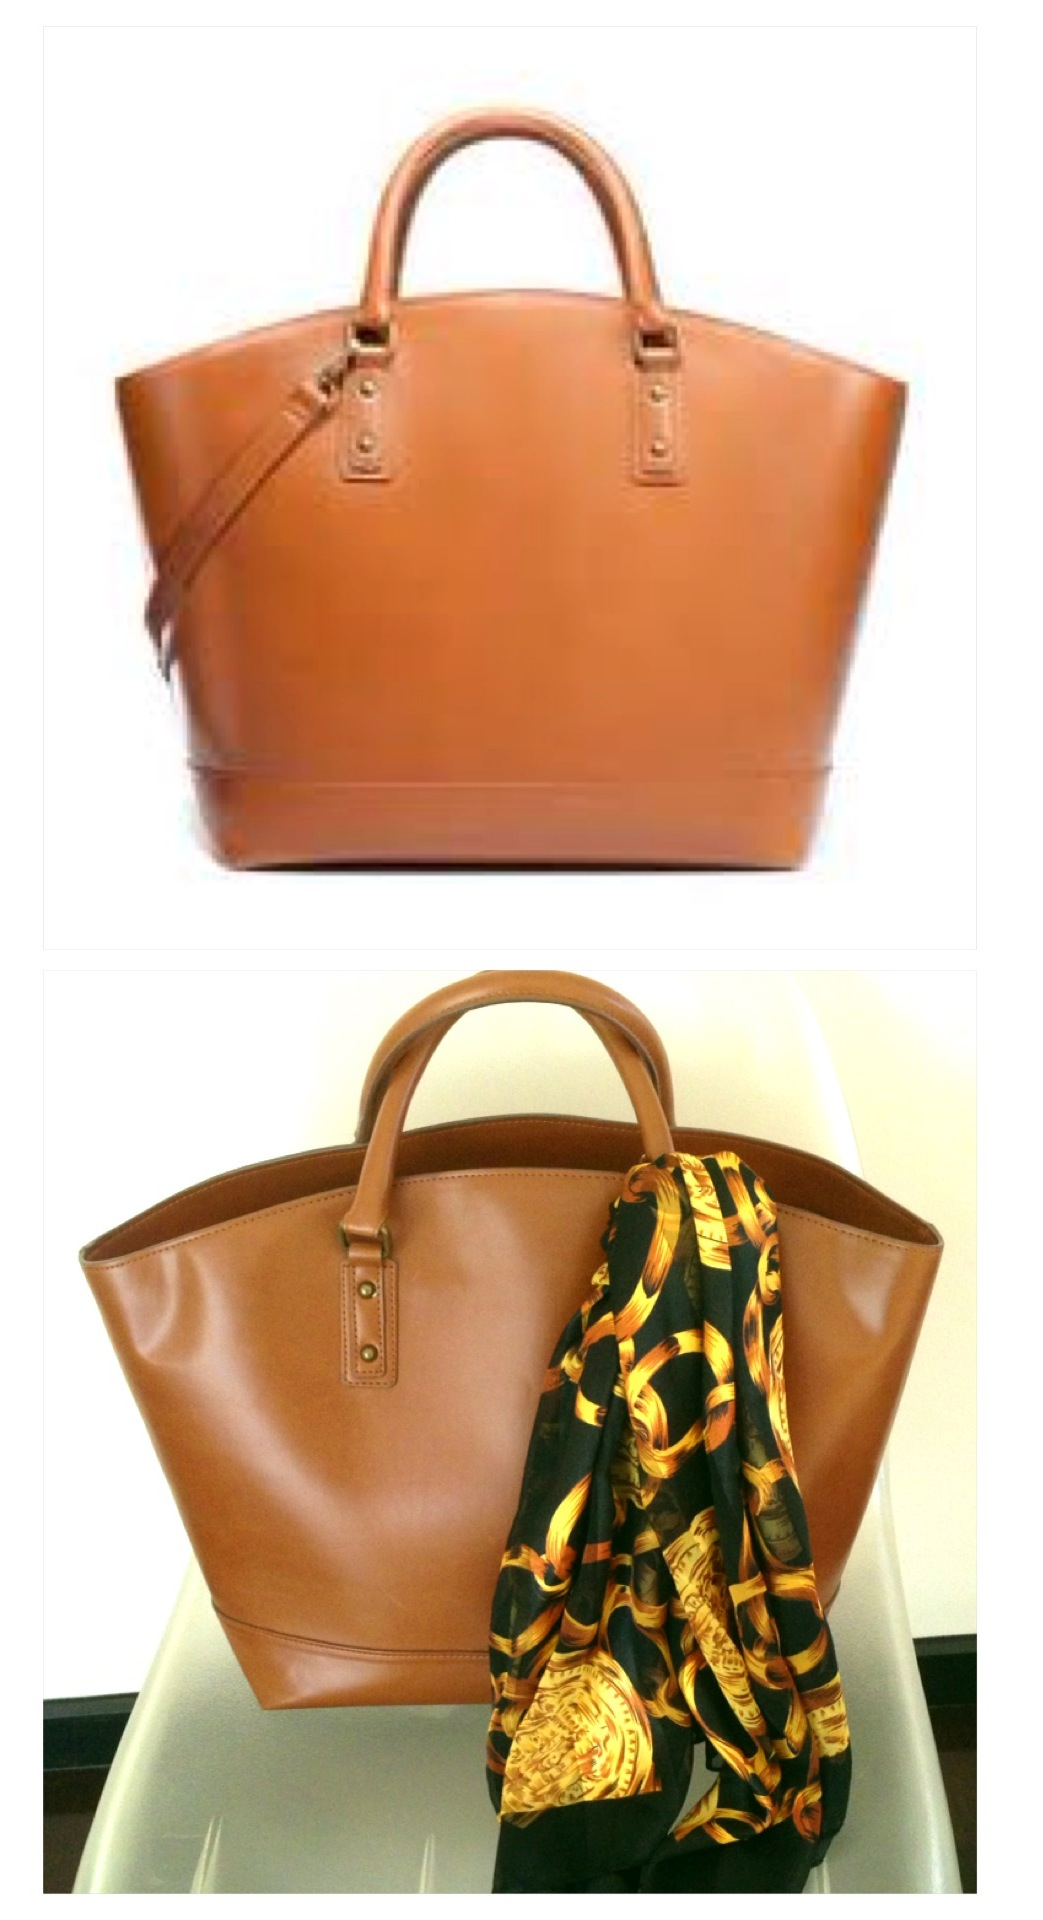 Zara Tan Oversized Tote Bag